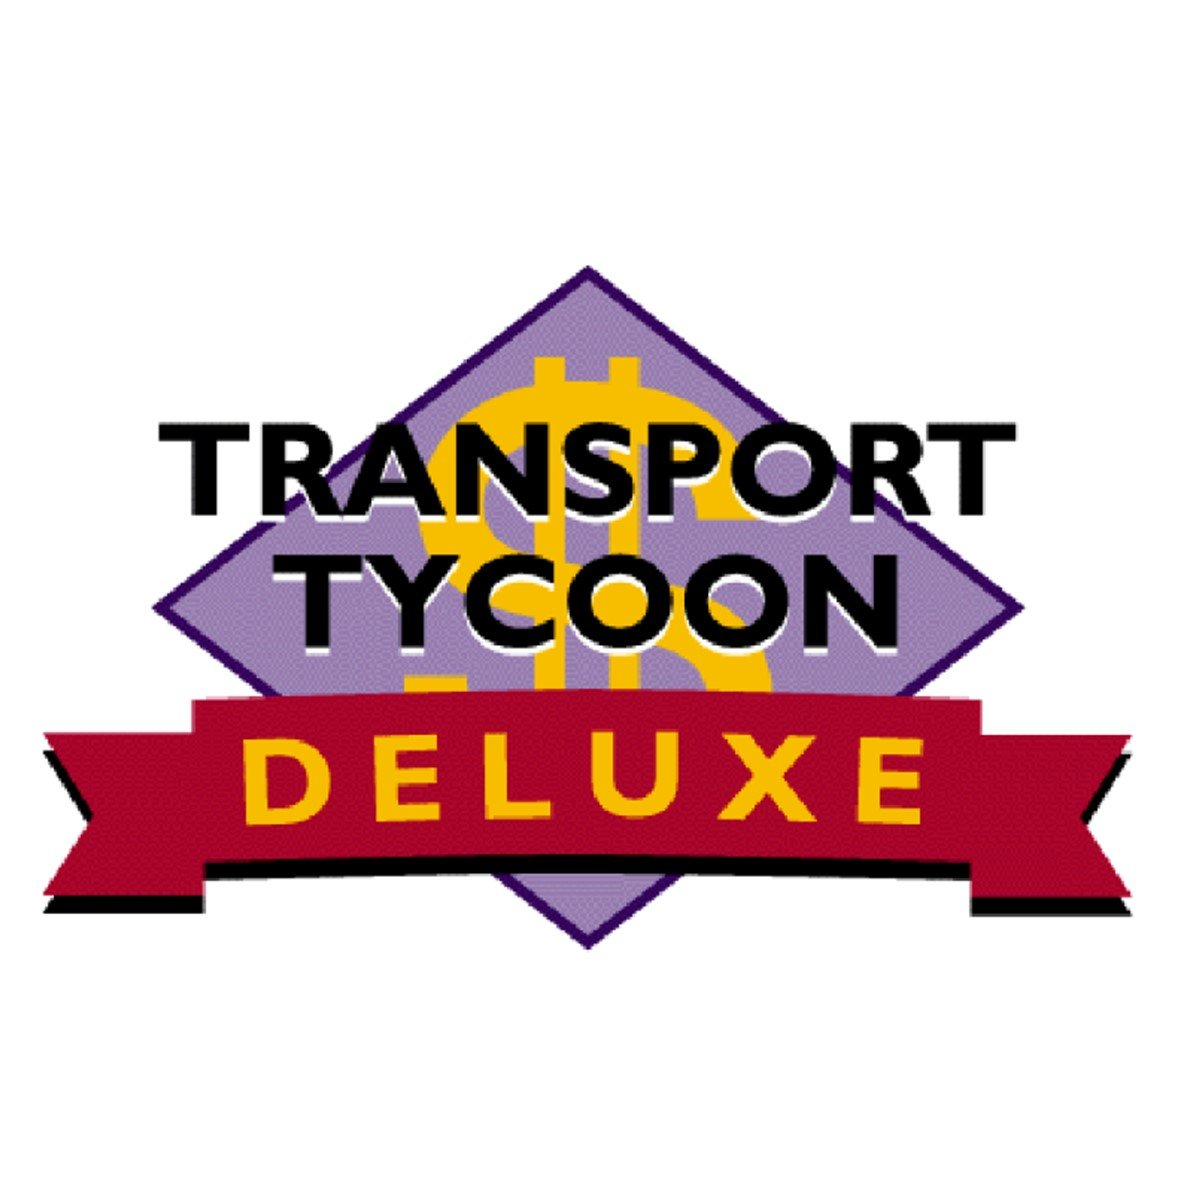 Transport Tycoon Deluxe Alternatives and Similar Games